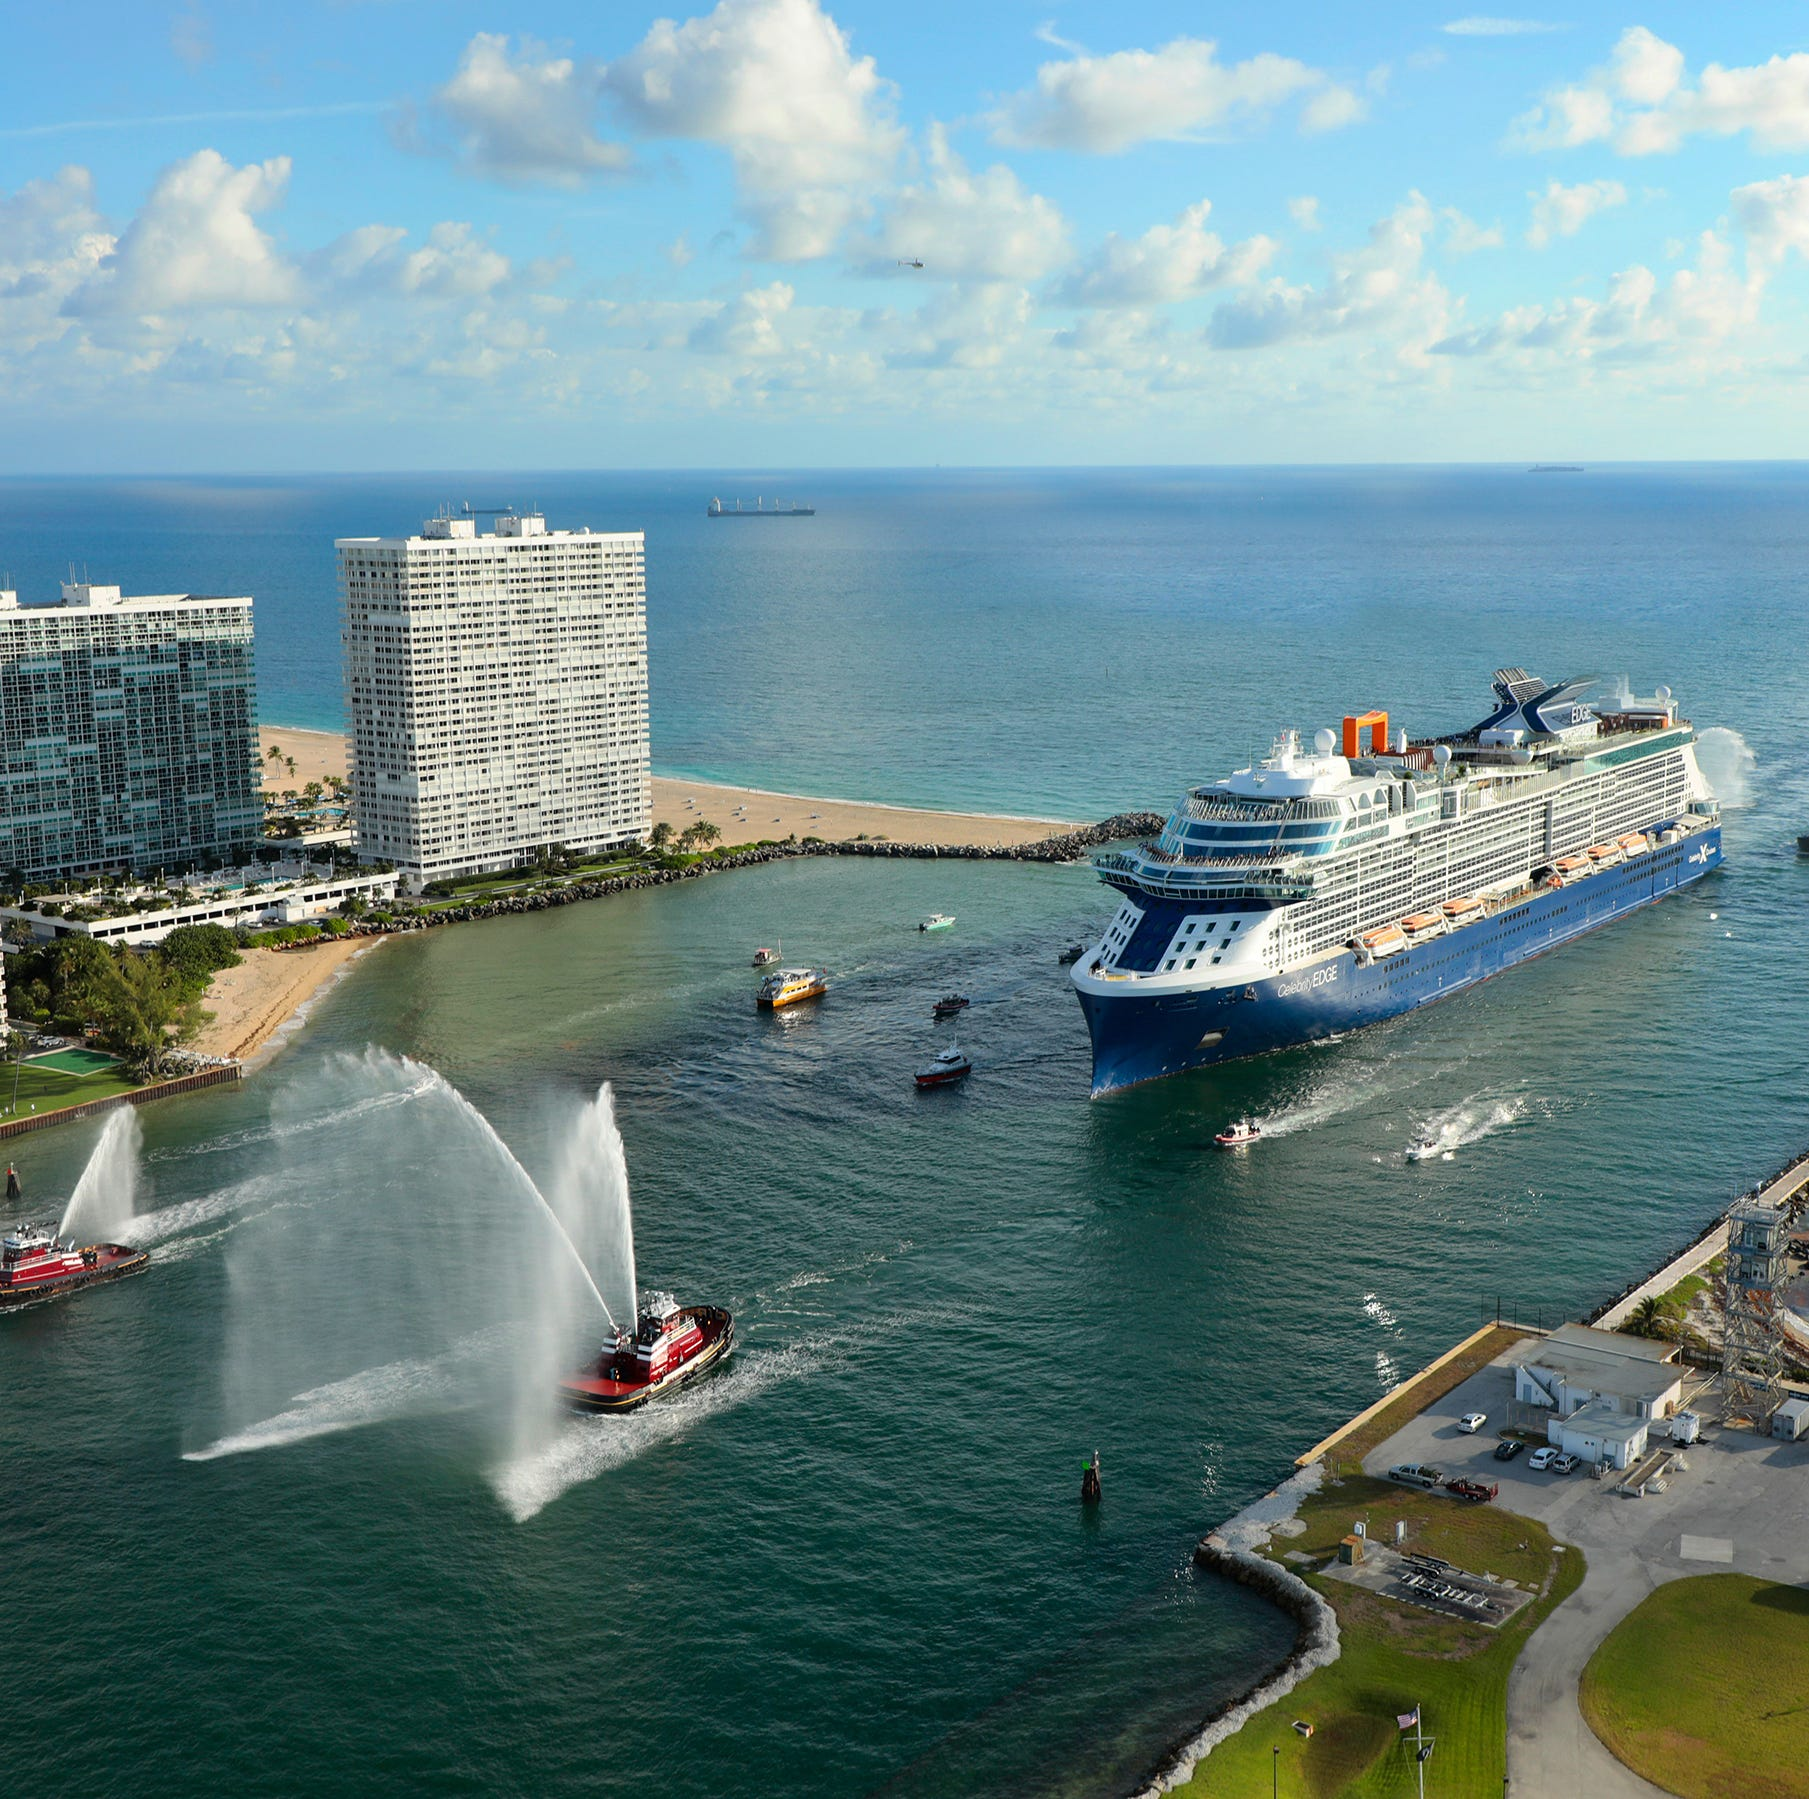 Celebrity Edge will be based at Florida's Port Everglades, which is located in the vicinity of Fort Lauderdale.